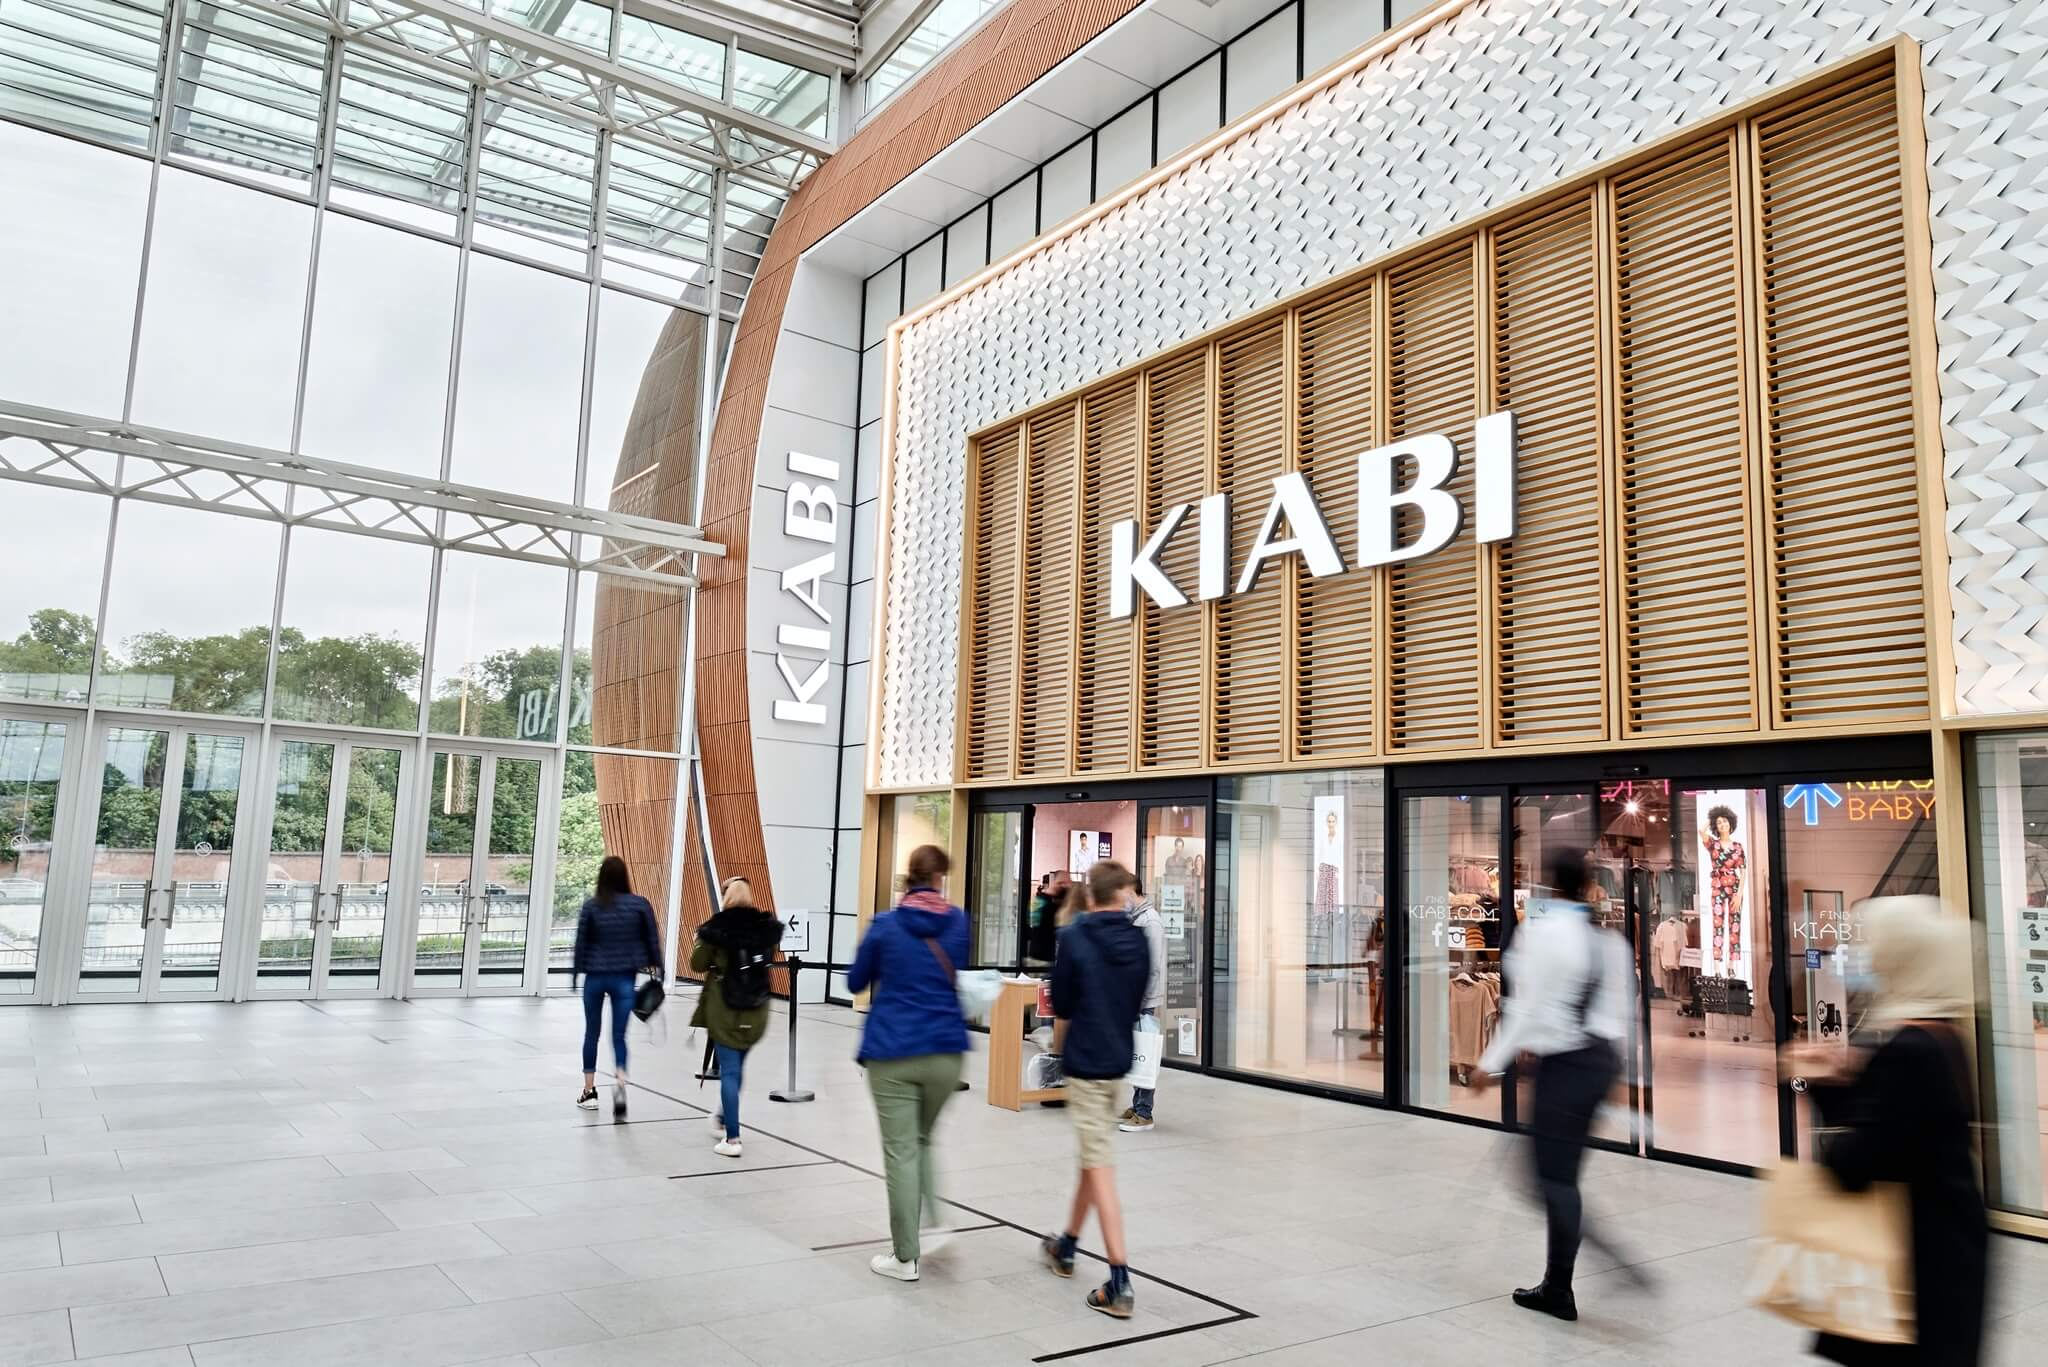 Kiabi | Docks Bruxsel | Shopping Center in Brussels